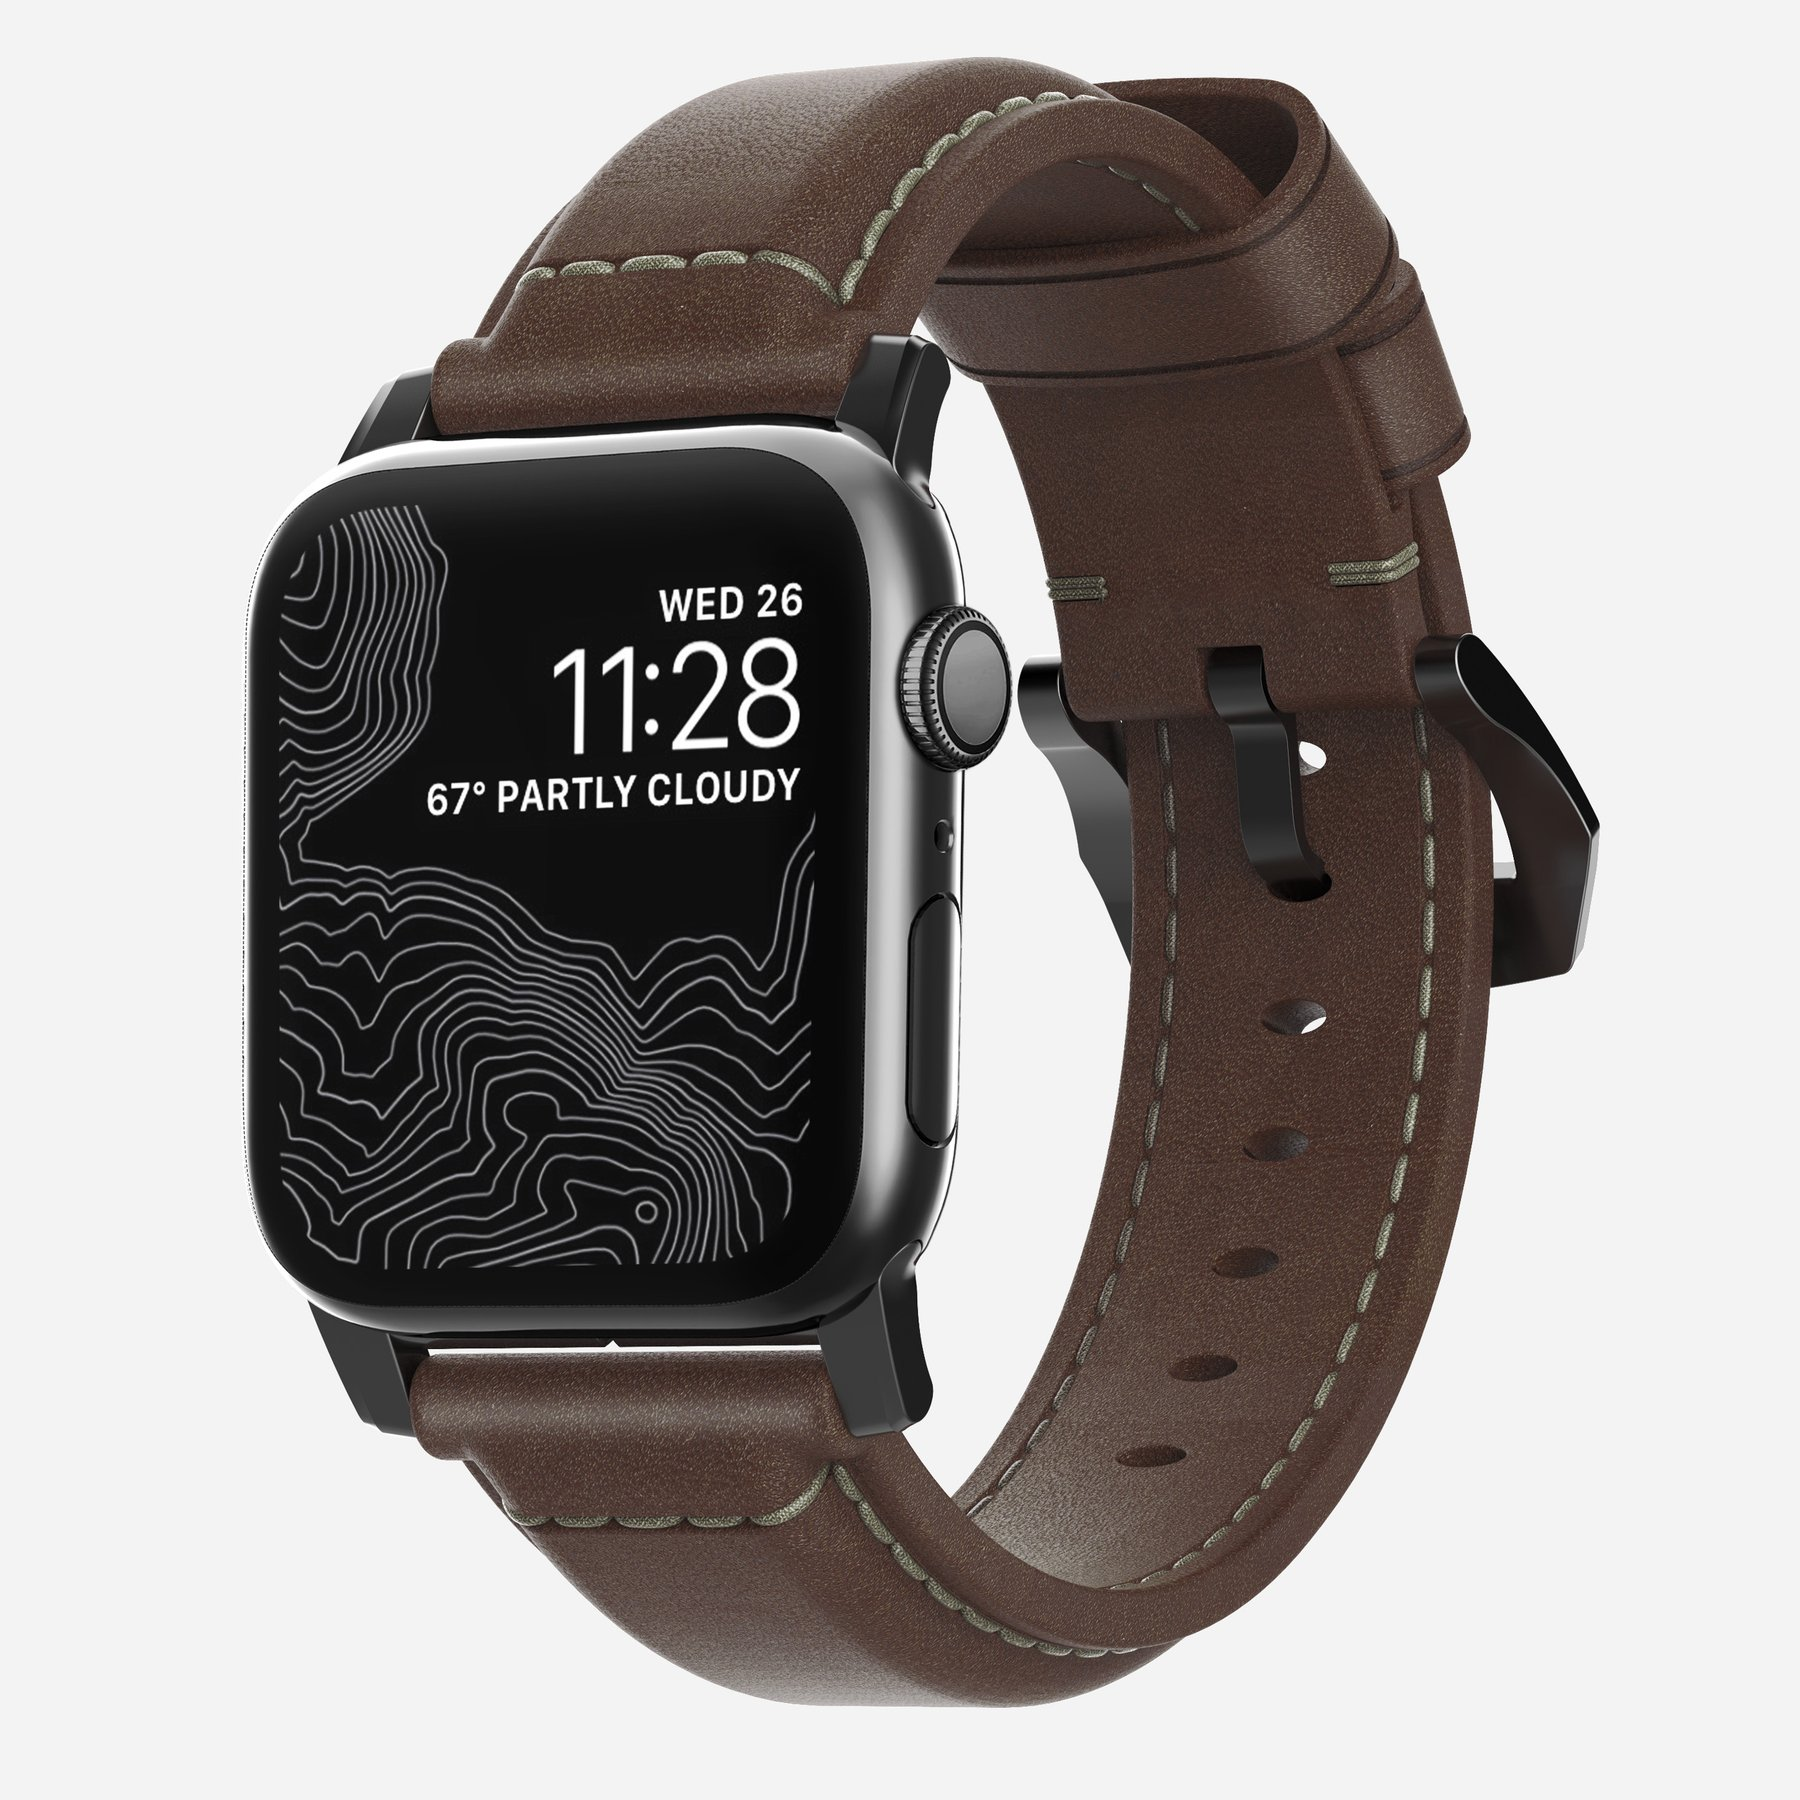 Nomad - Traditional - Leather strap Apple Watch | Band-Band